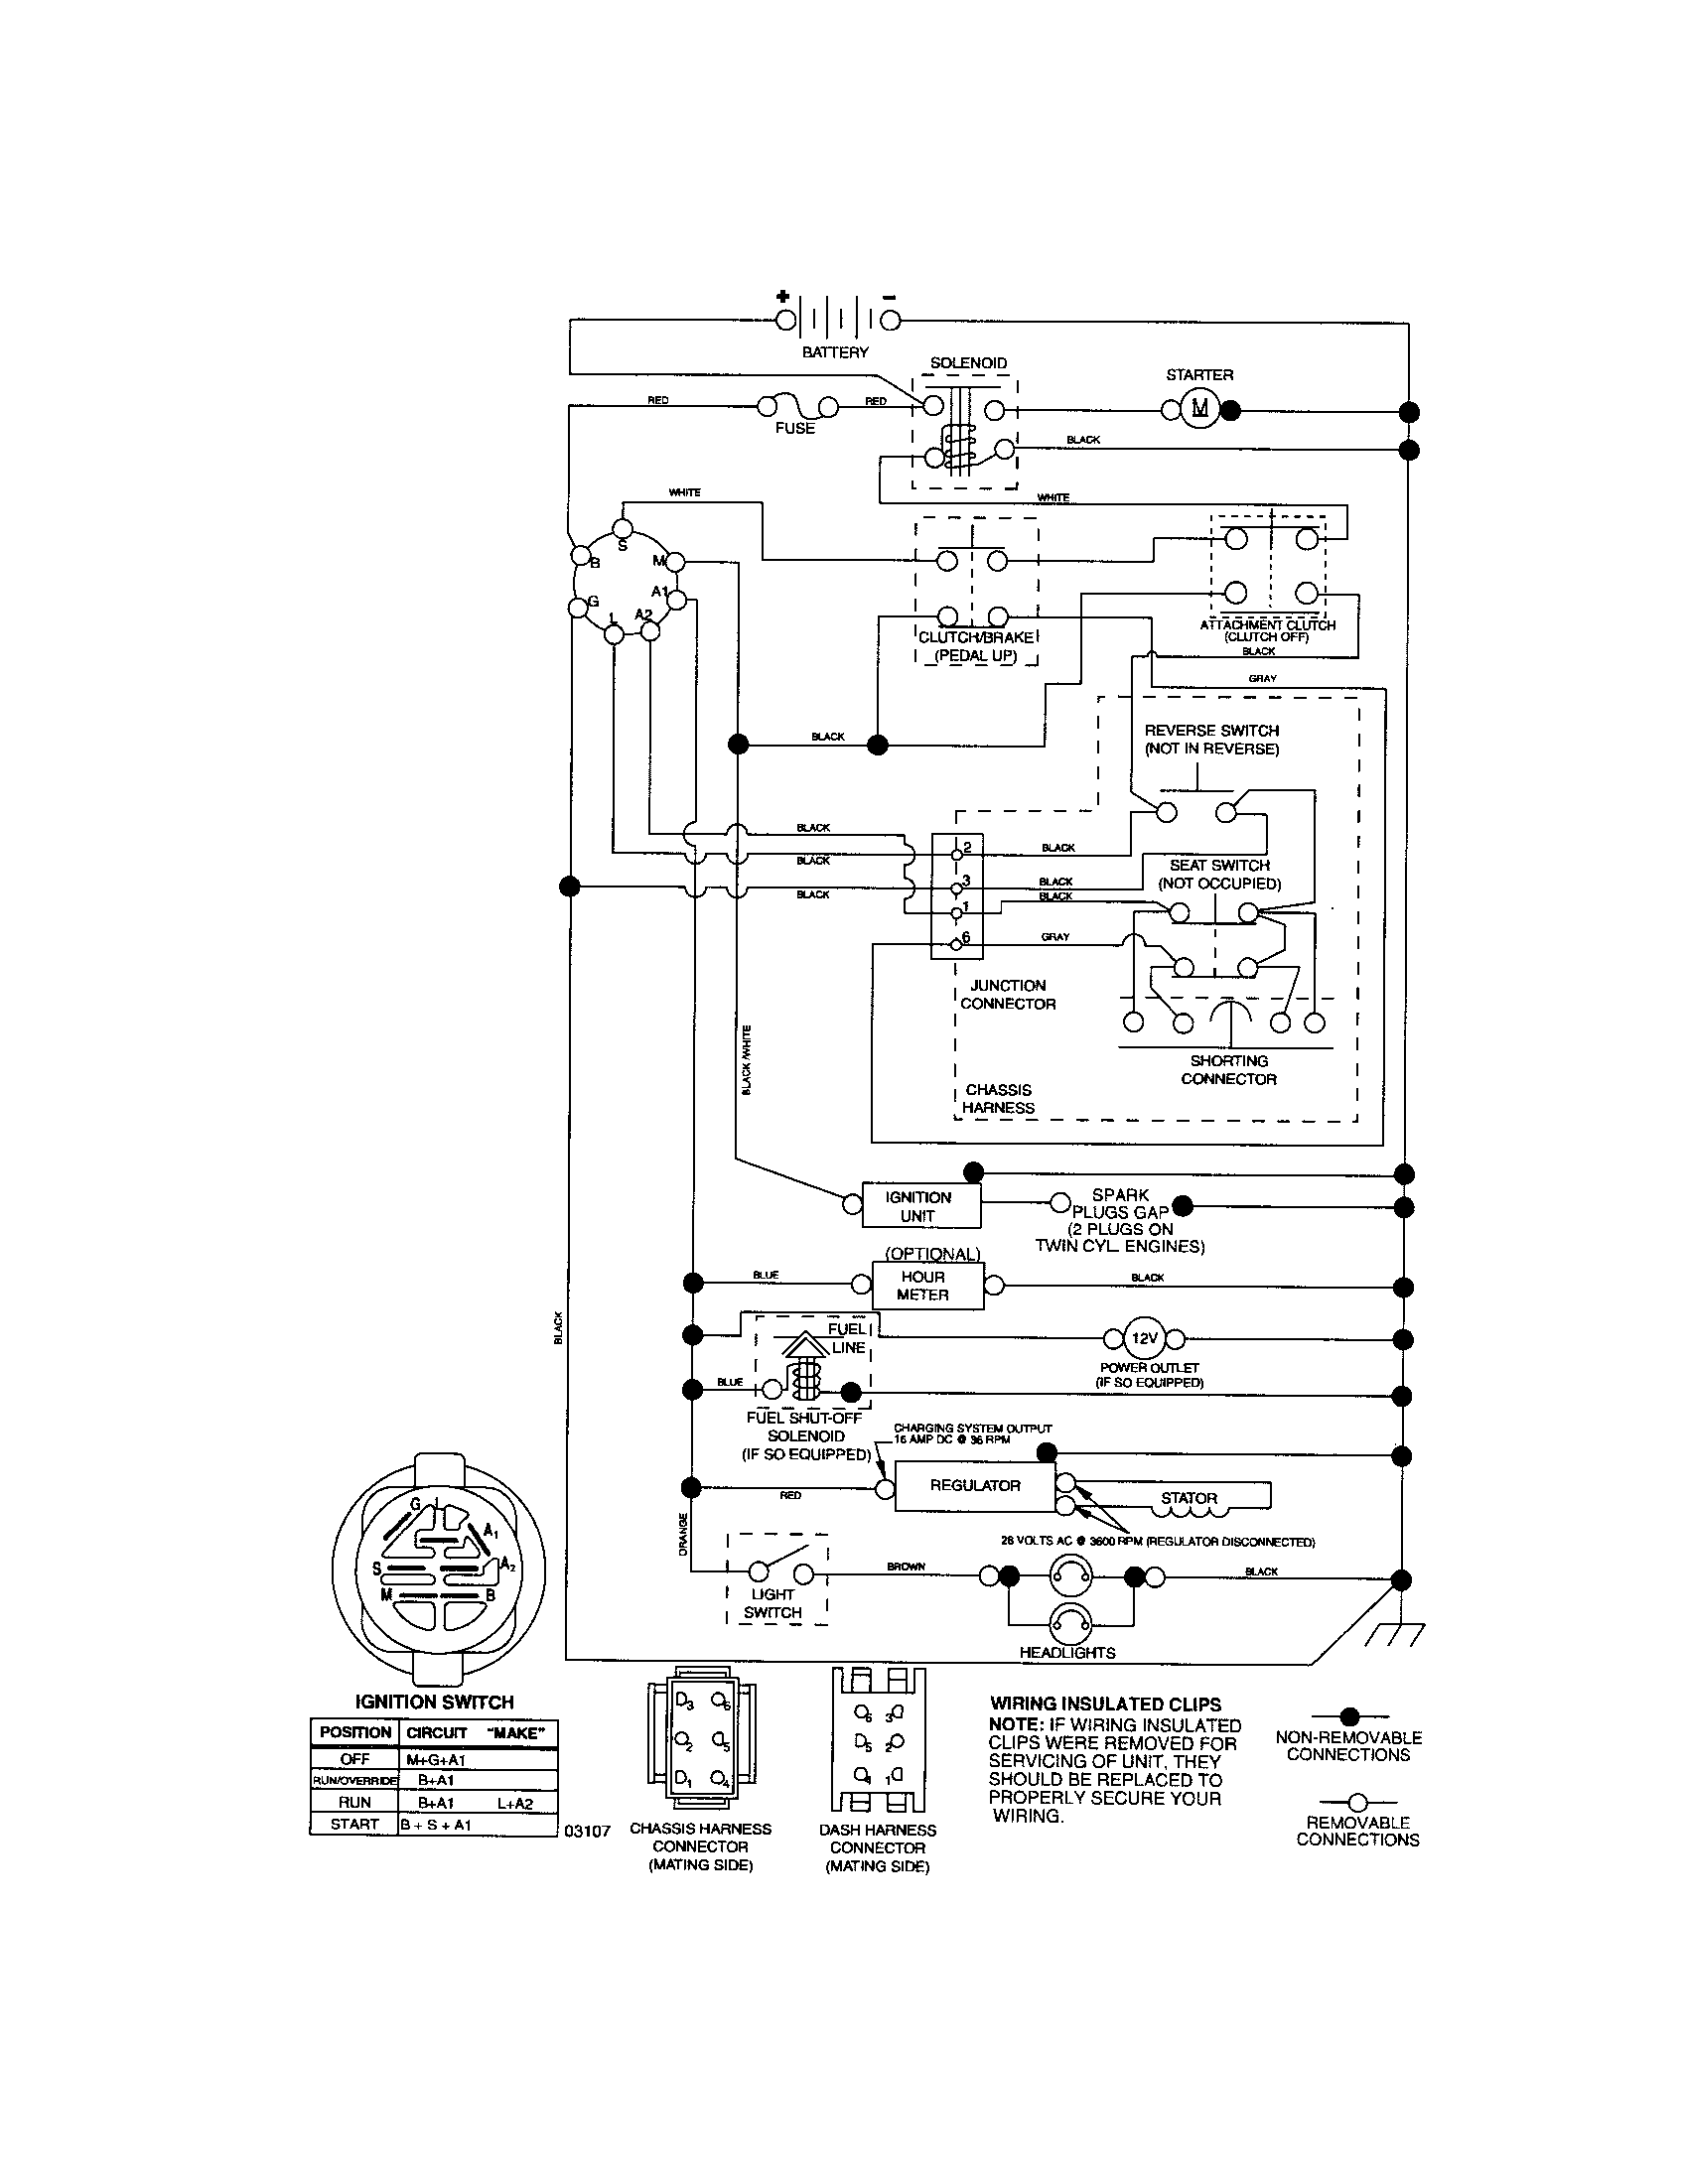 Craftsman Riding Mower Electrical Diagram Wiring Off Road Lights Lawn I Need One For